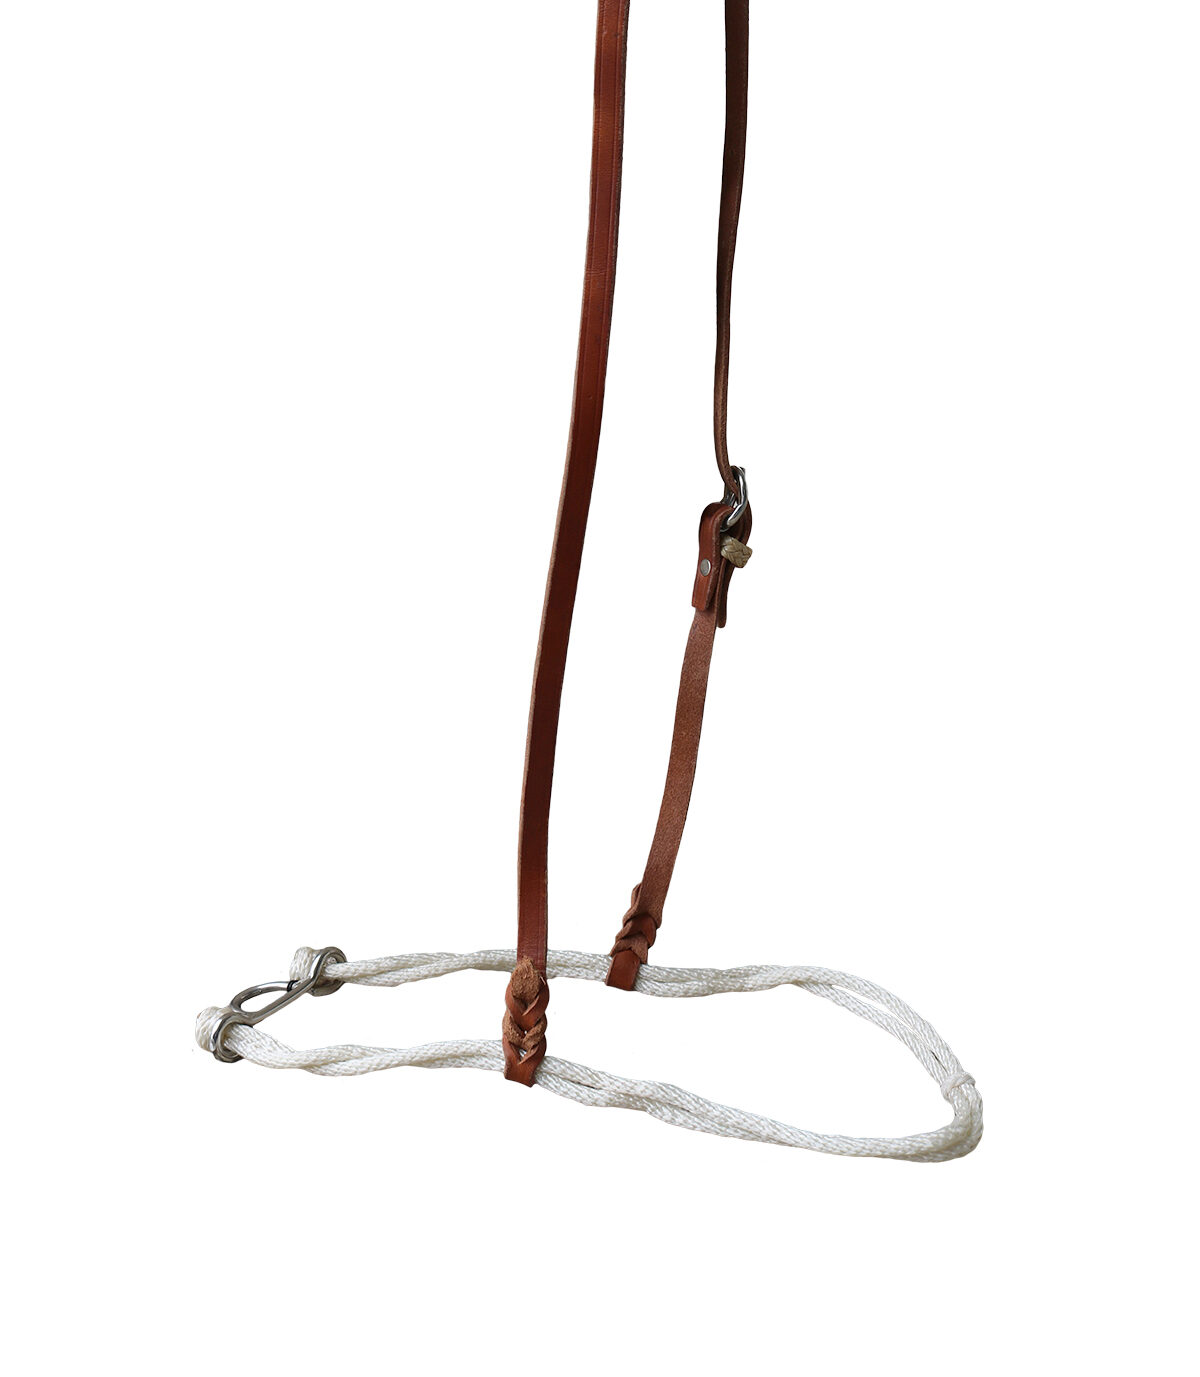 E-2001 elite single rope cord noseband with rawhide loops